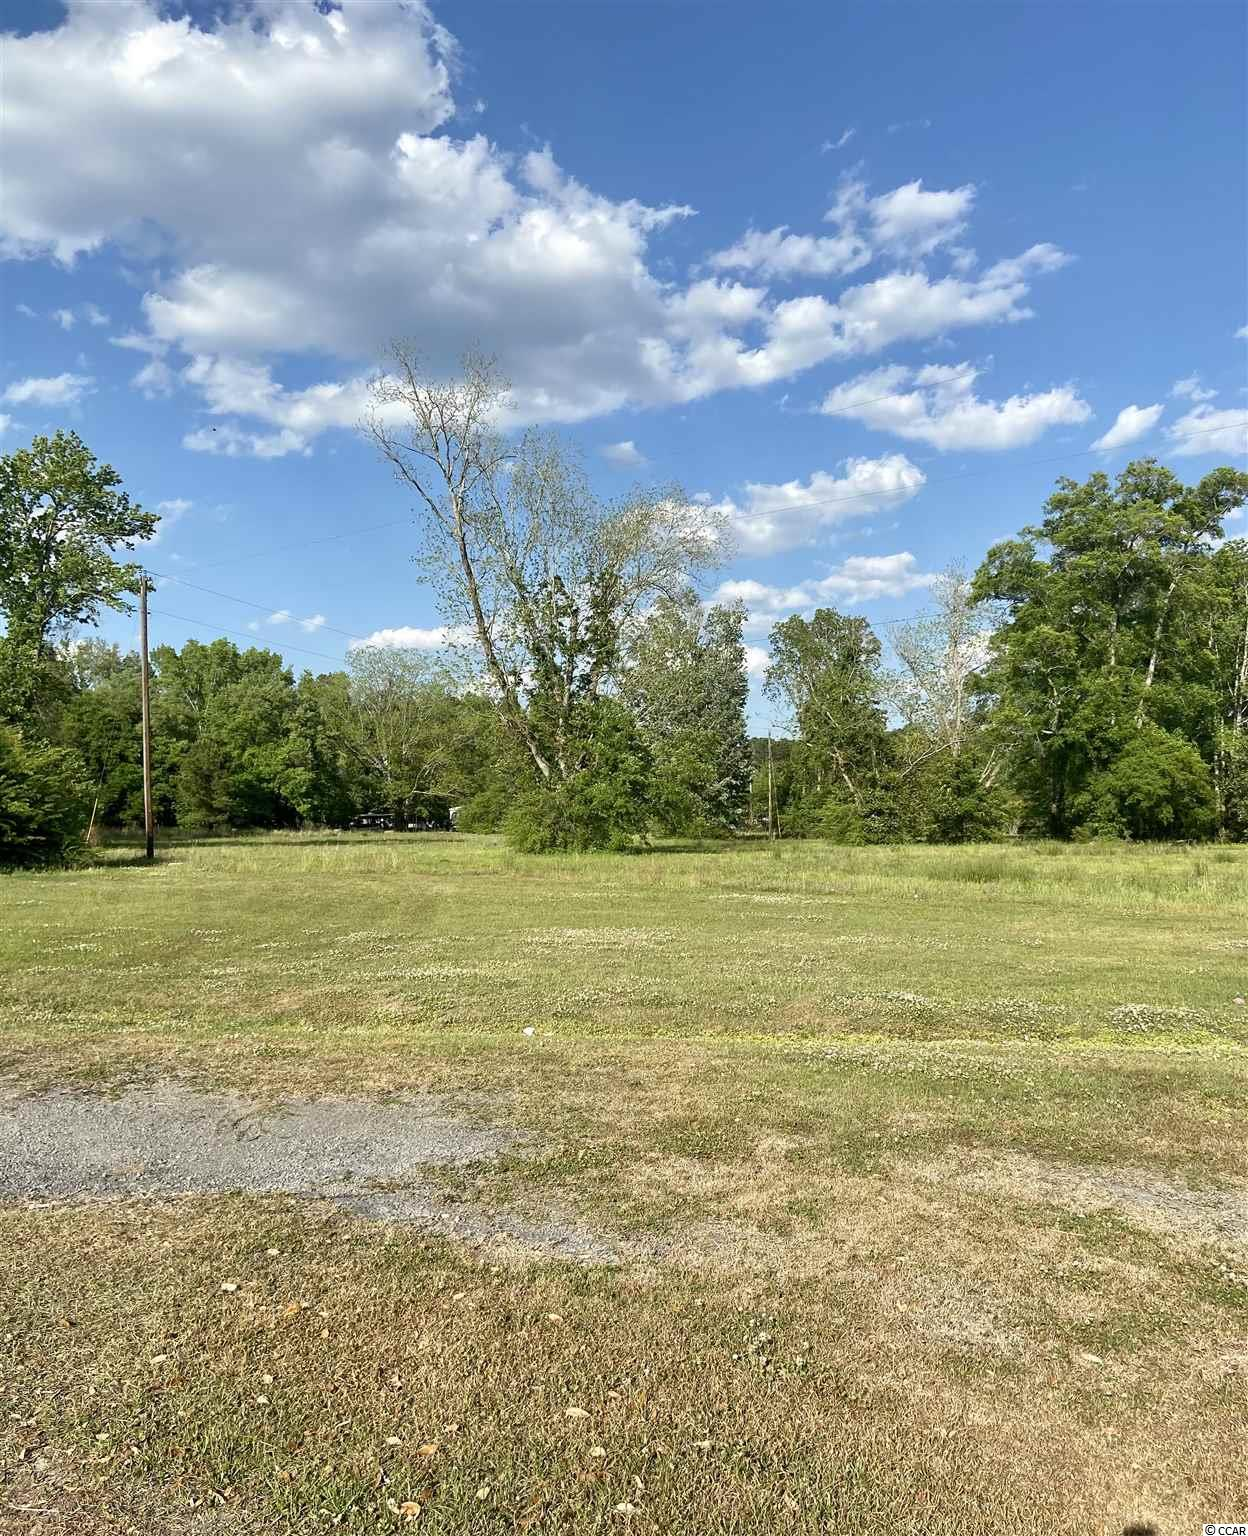 Excellent location! Here is the perfect opportunity for your Business! This 3 acre commercial lot in Georgetown, SC. is located right on busy Highmarket Street and is a prime location for almost any business seeking to grow in that area. Ready to build on with ample space. Land is cleared and has been maintained and is close to all other surrounding businesses. 5 minutes to downtown and the historic waterfront.